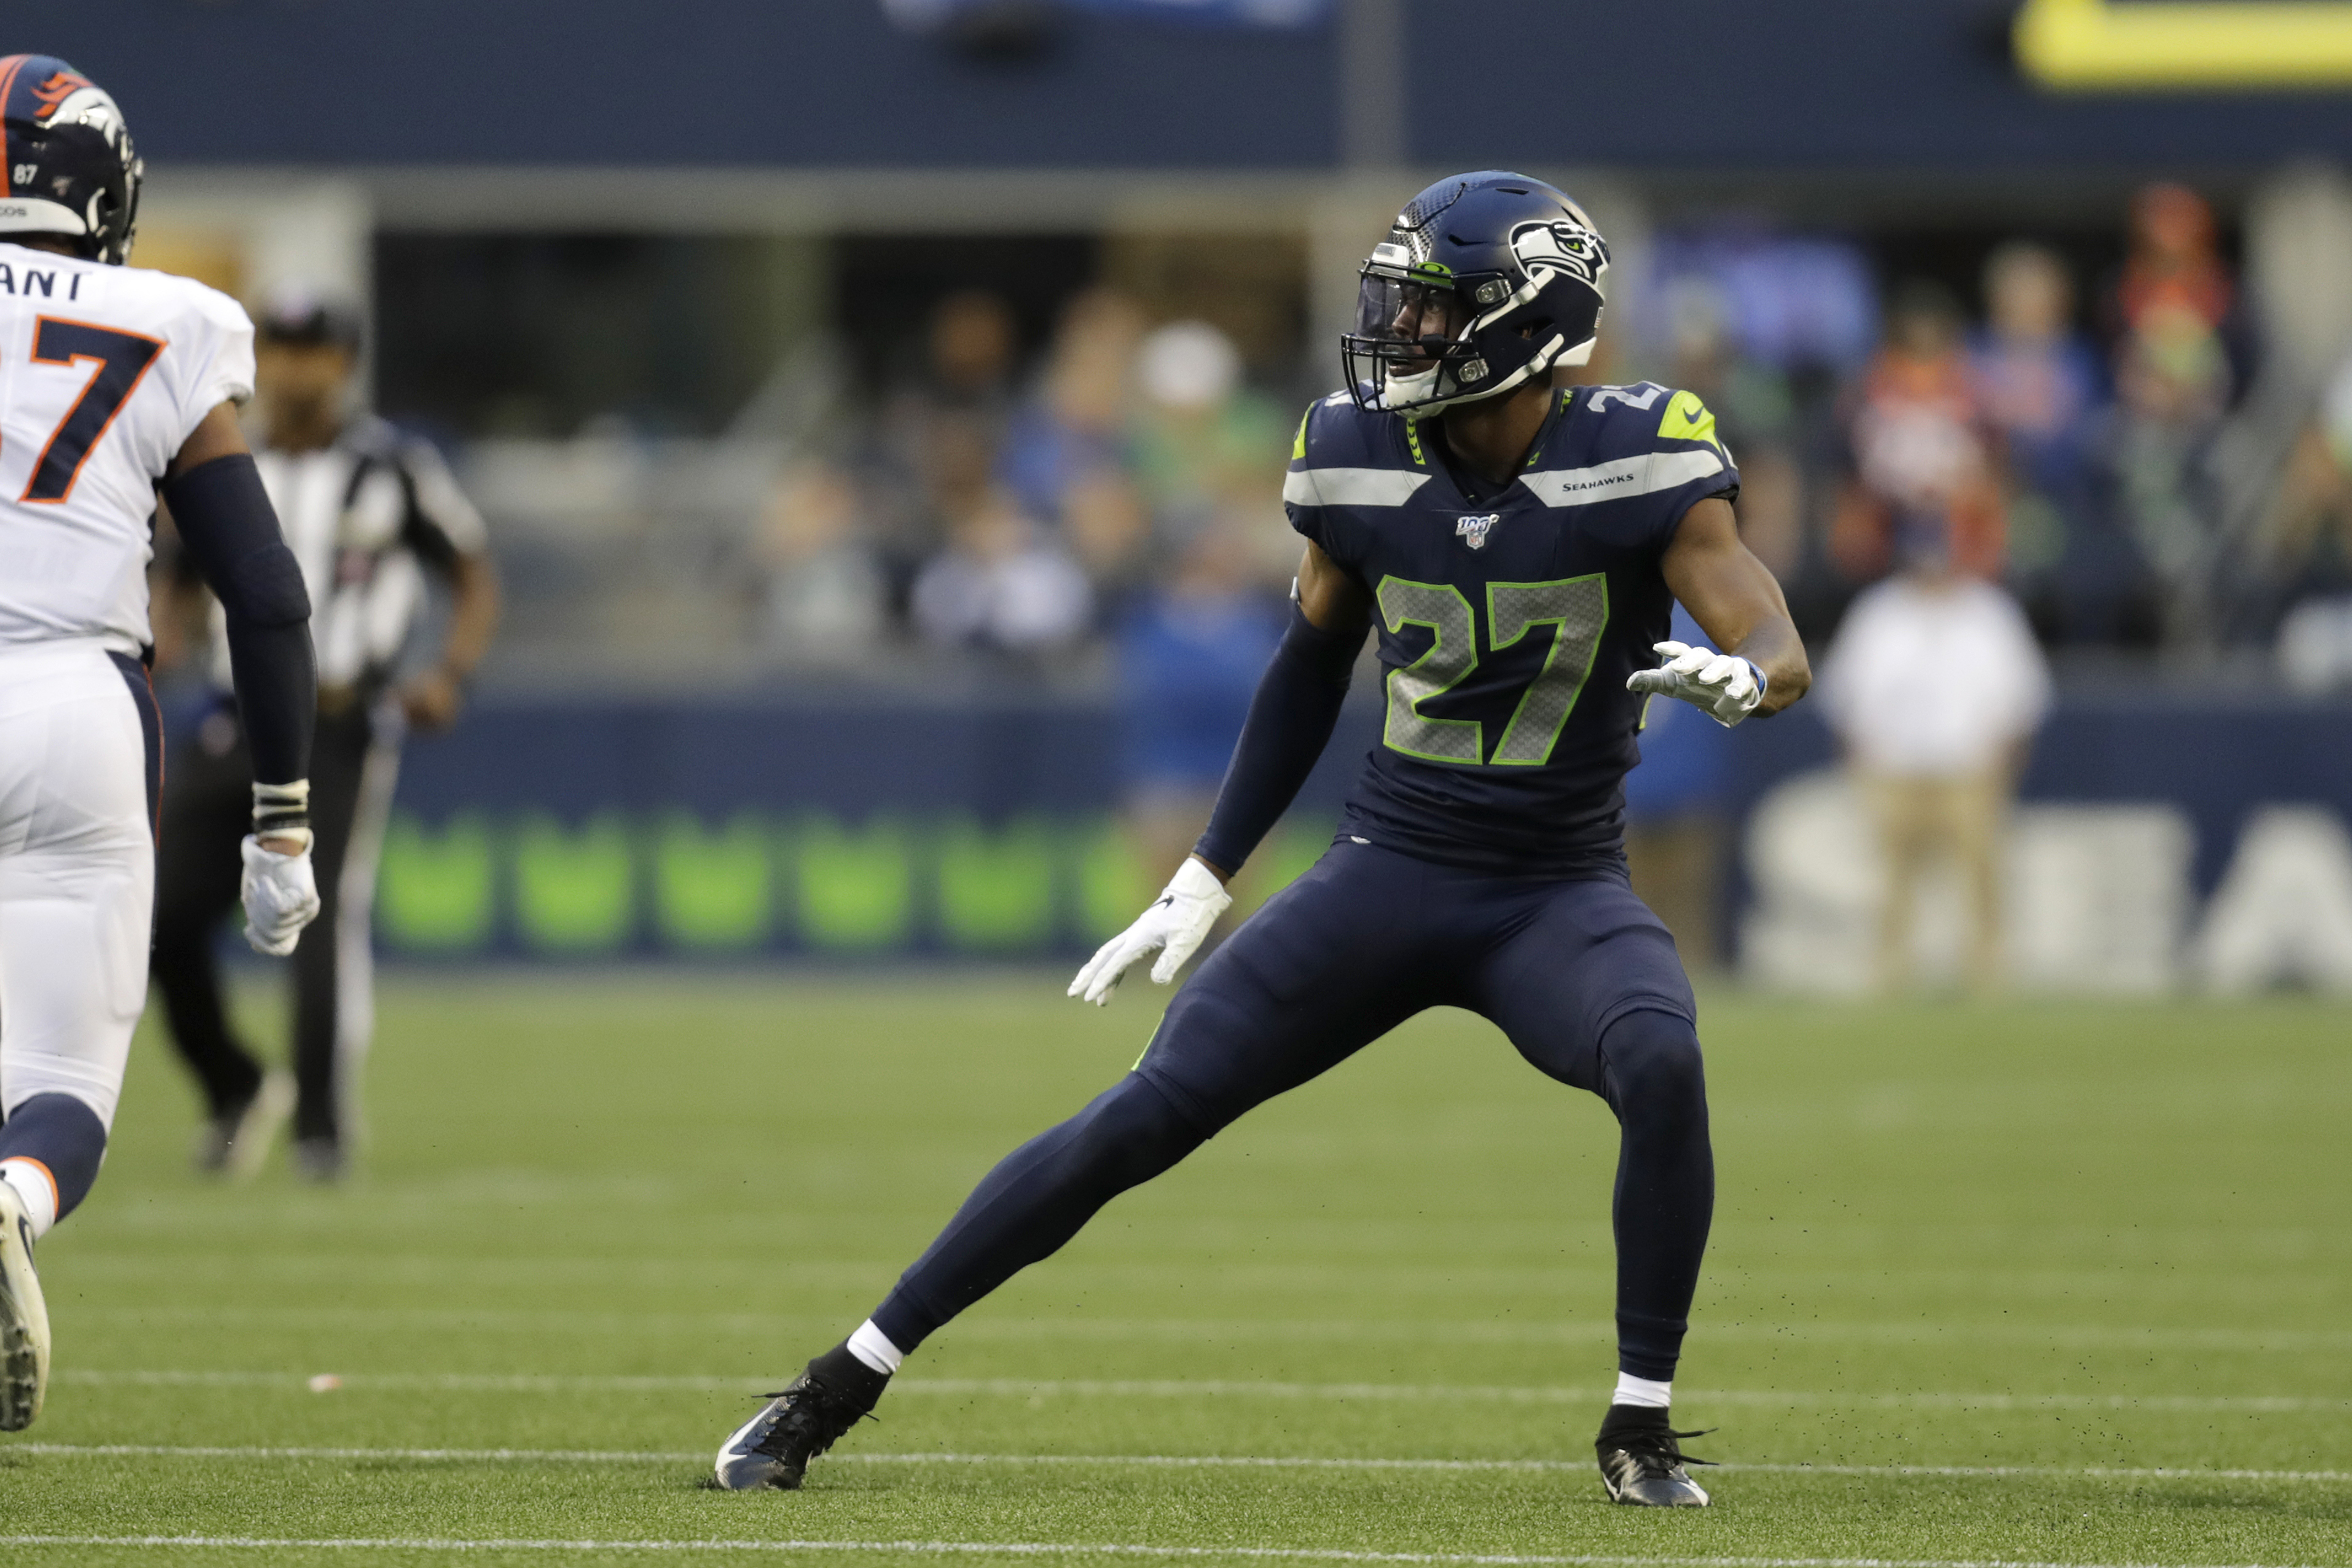 Seattle Seahawks defensive back Marquise Blair watches a Denver Broncos play develop during the first half of an NFL football preseason game Thursday, Aug. 8, 2019, in Seattle.